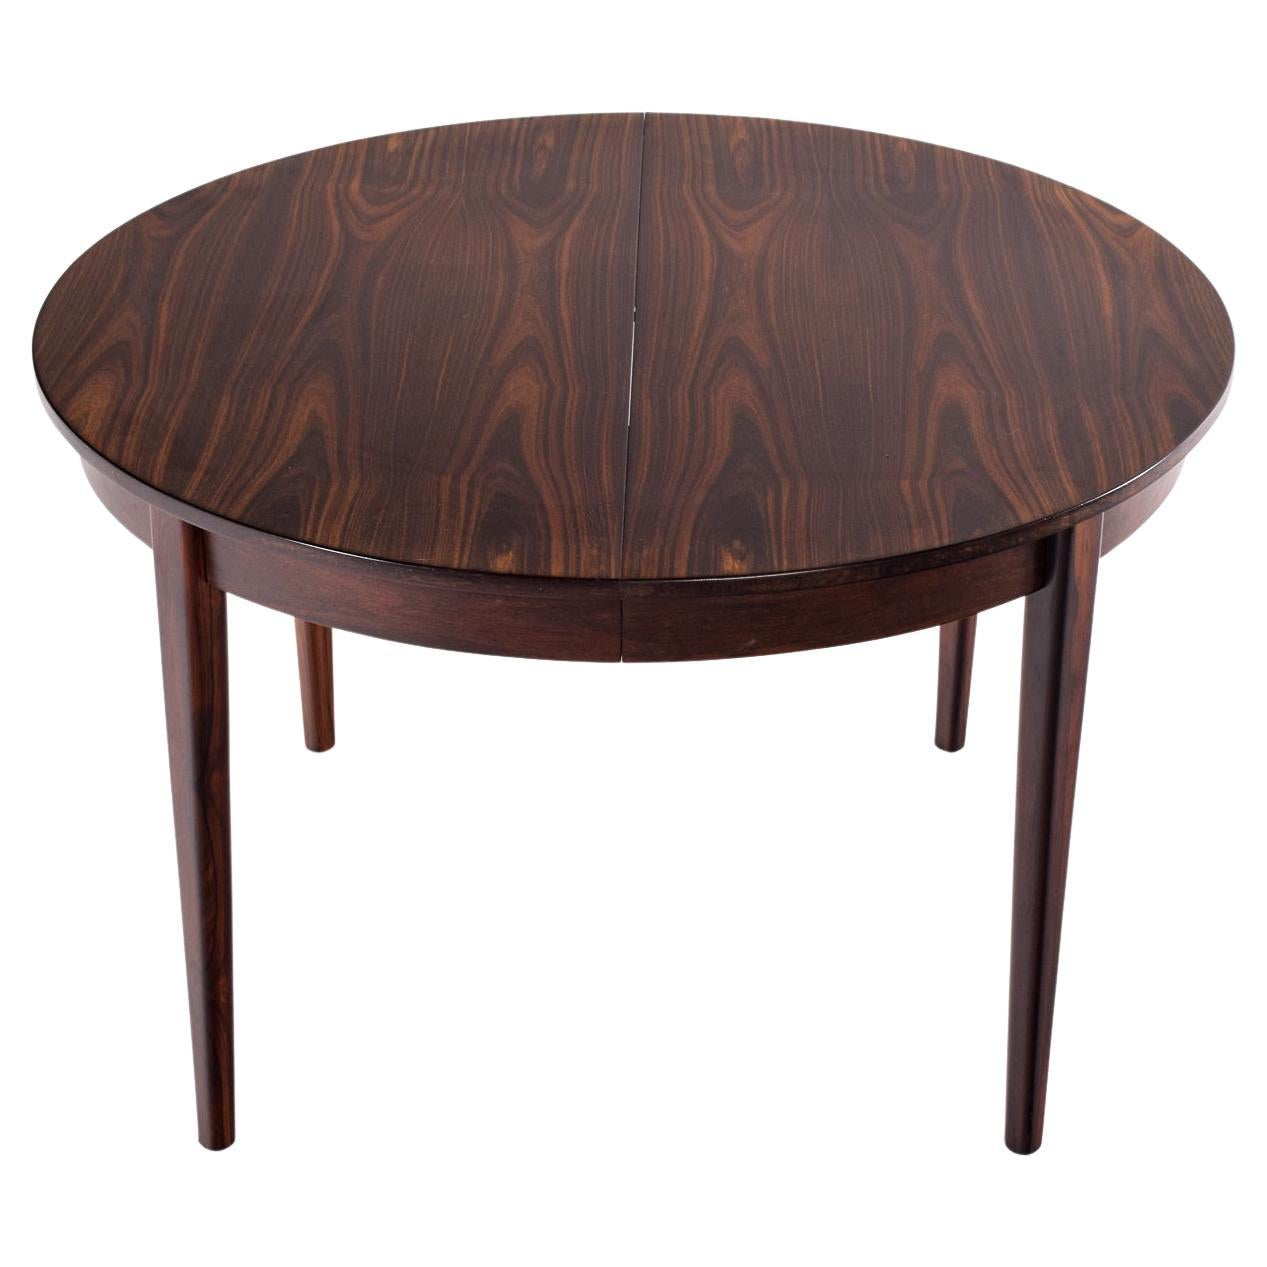 Round Danish Rosewood Extendable Dining Table, 1960s